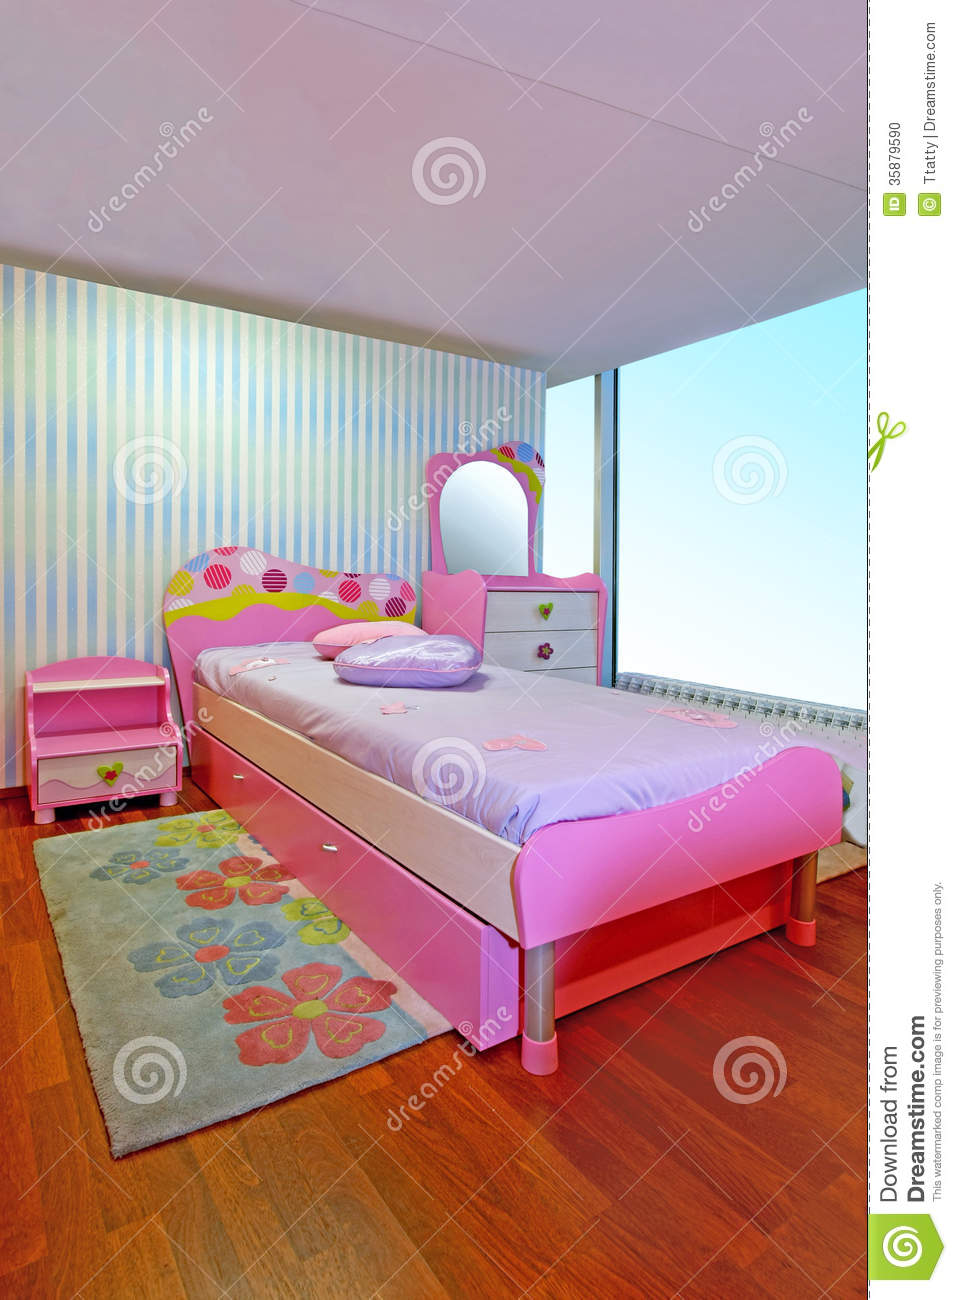 Pink girly bedroom stock photo image 35879590 - Chambre a coucher enfant ...